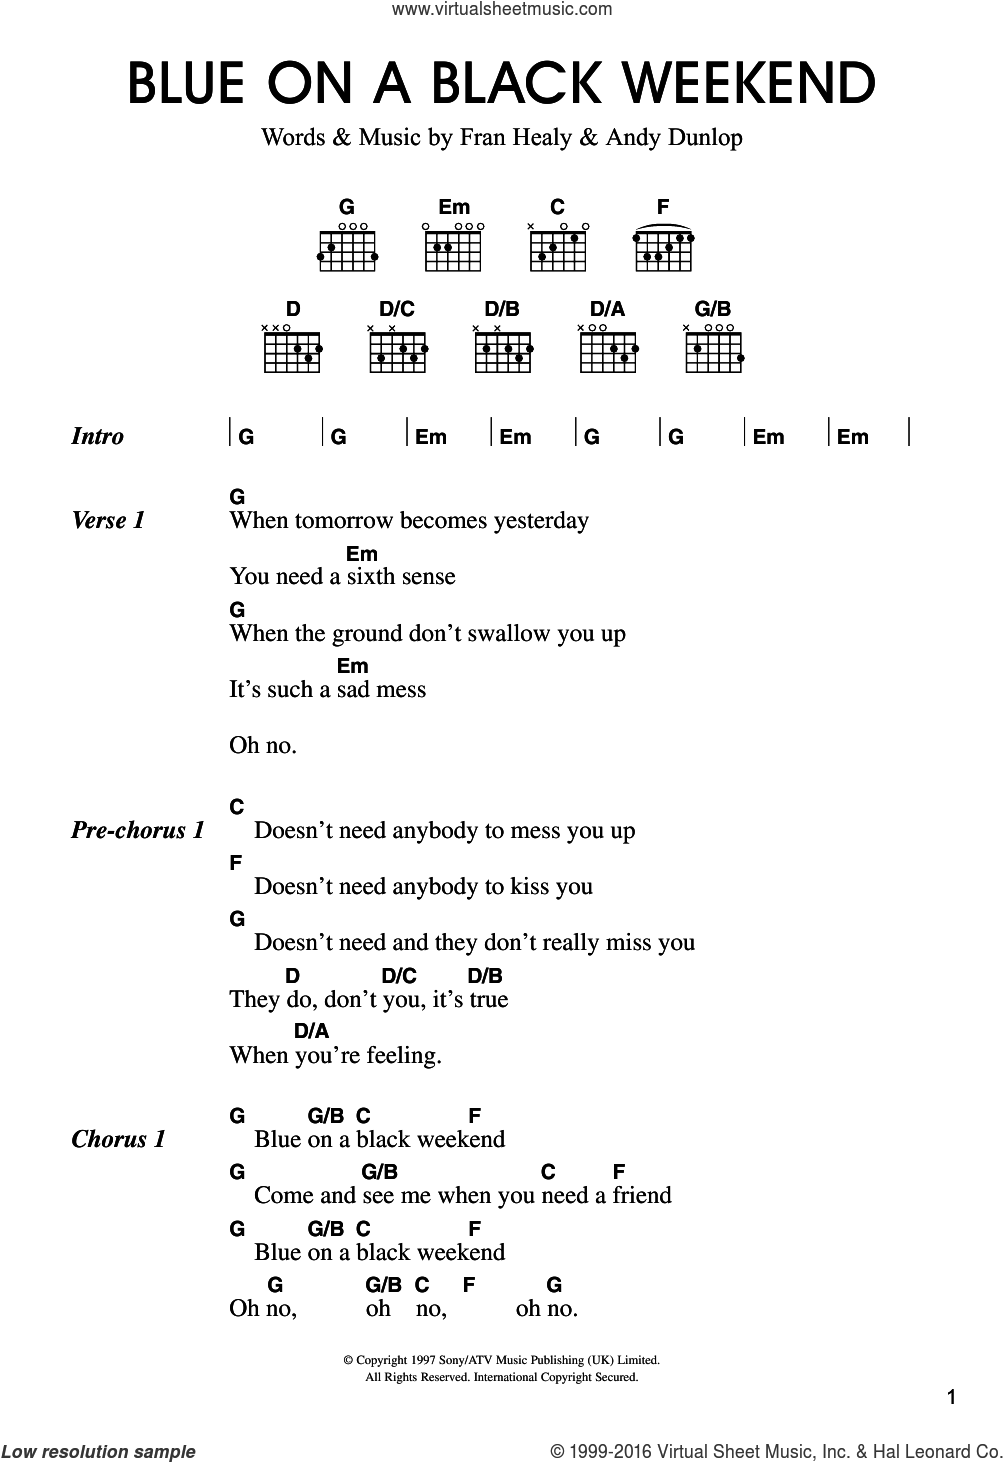 Blue On A Black Weekend sheet music for guitar (chords) by Merle Travis, Andrew Dunlop and Fran Healy, intermediate skill level